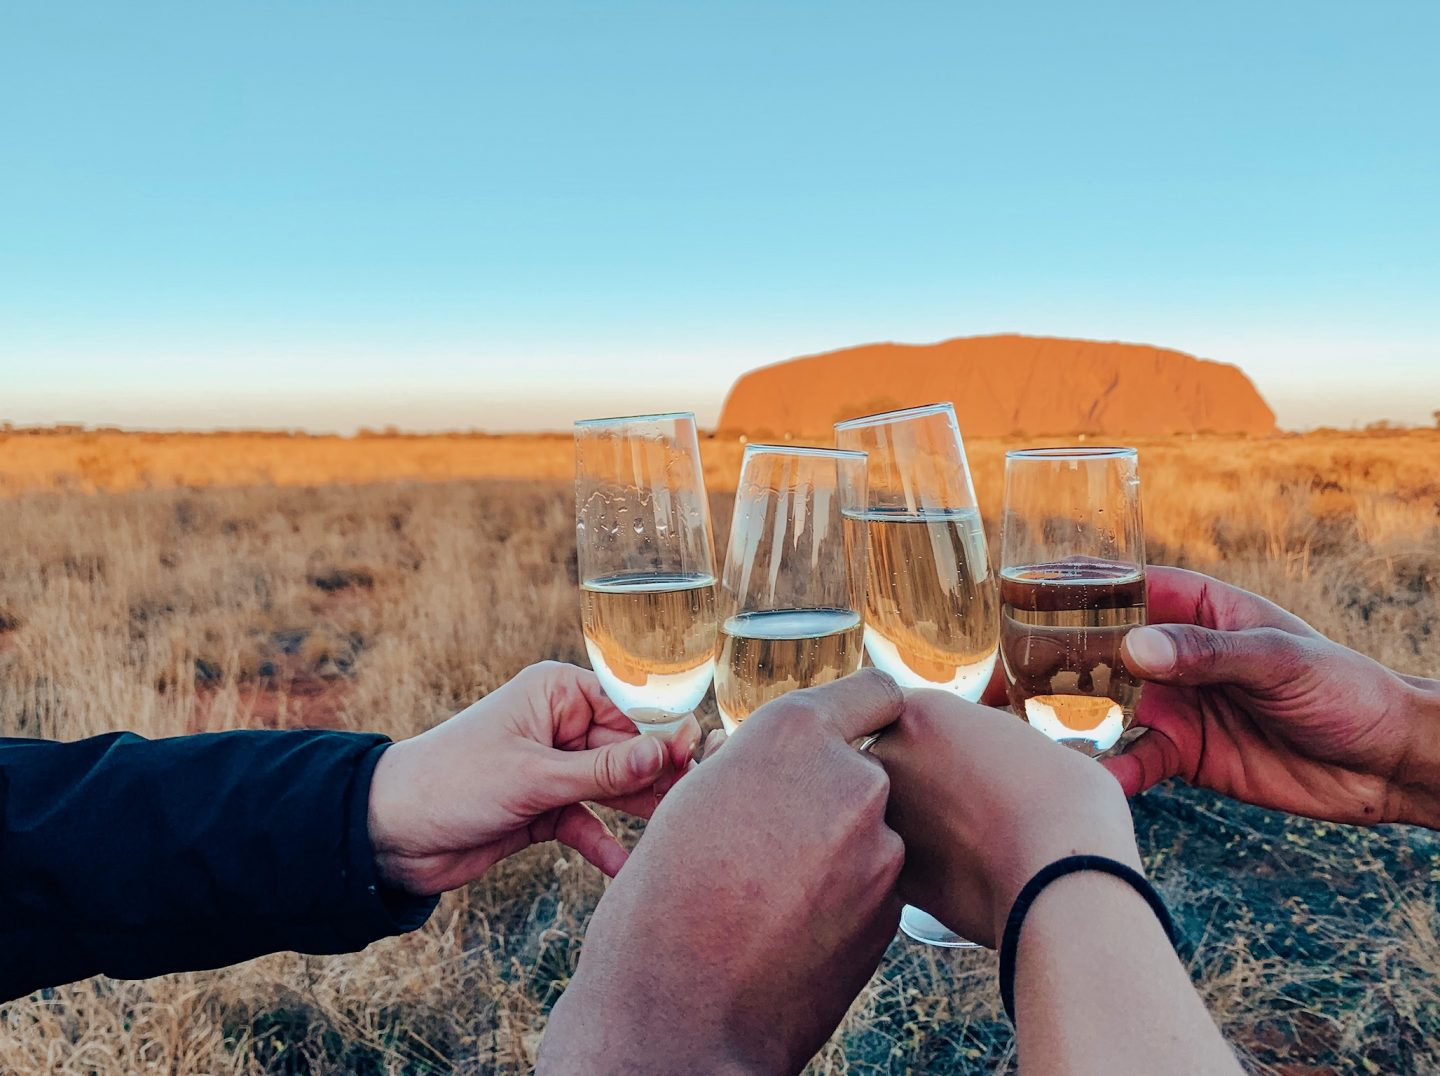 Drinking champagne at sunset in the Outback.